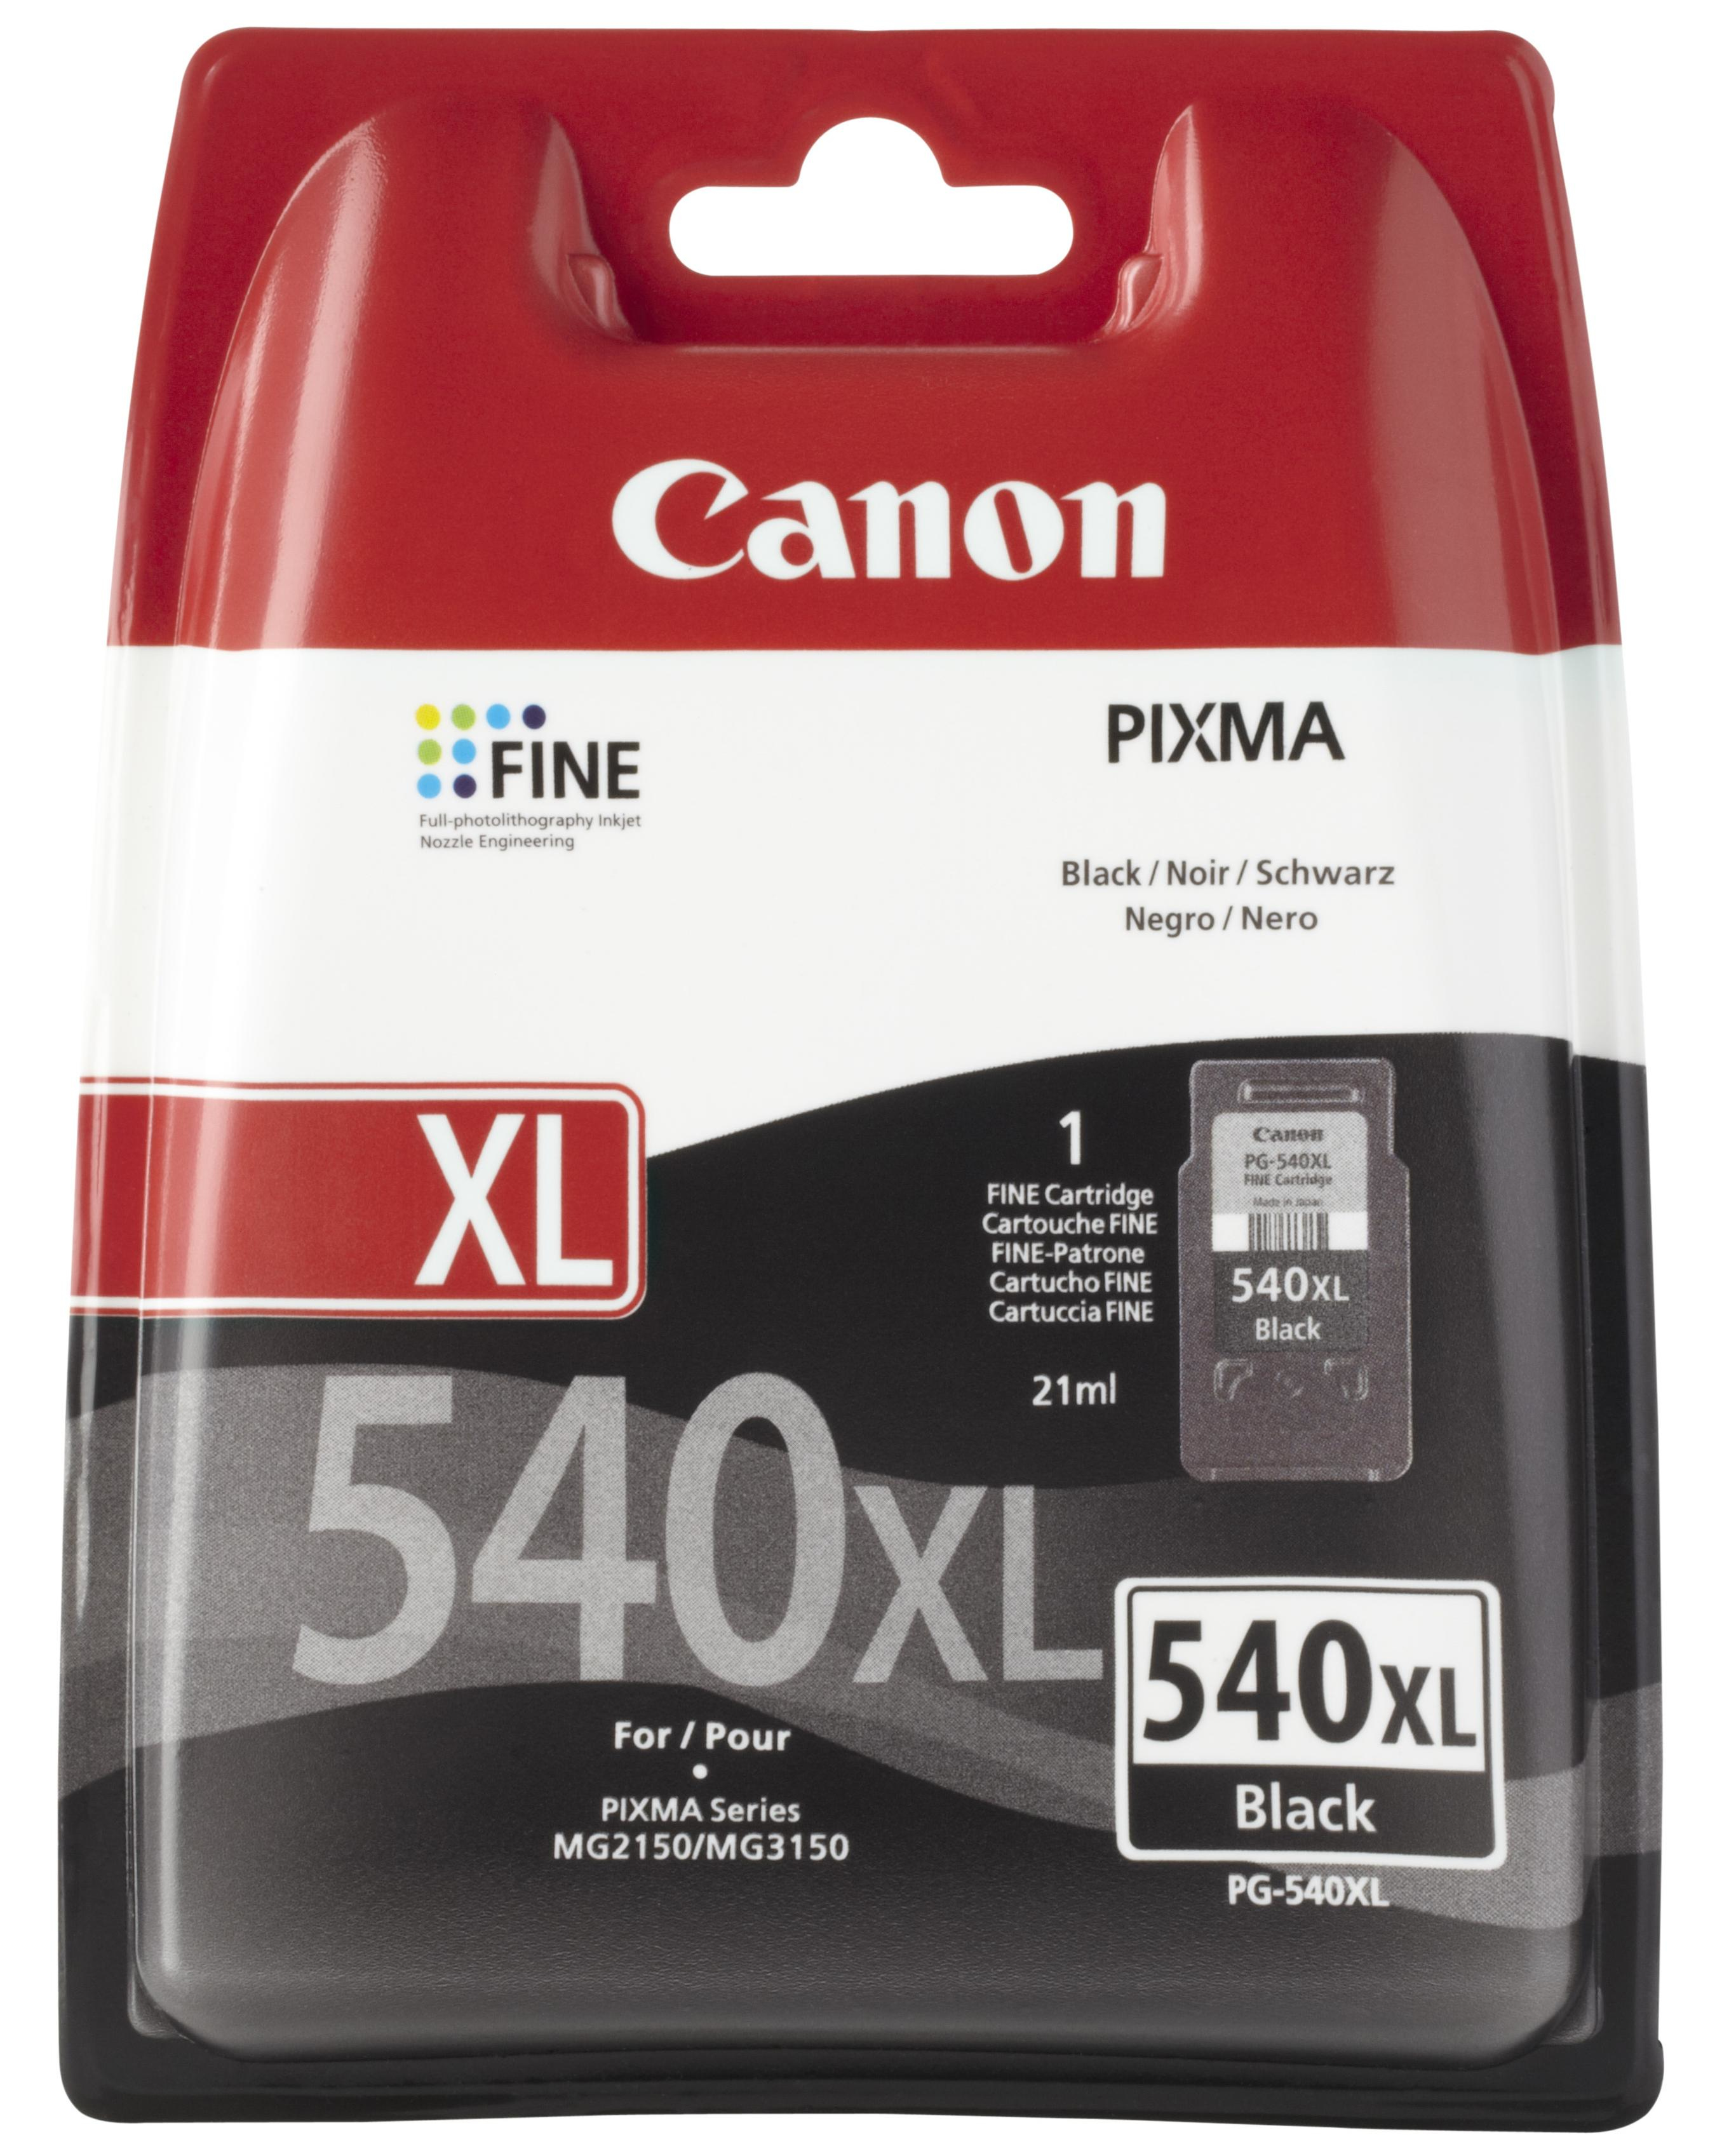 Canon - Supplies Ink Hv          Pg-540 Xl Bl Eur W/o Sec            Black Xl Ink Cartridge              5222b005